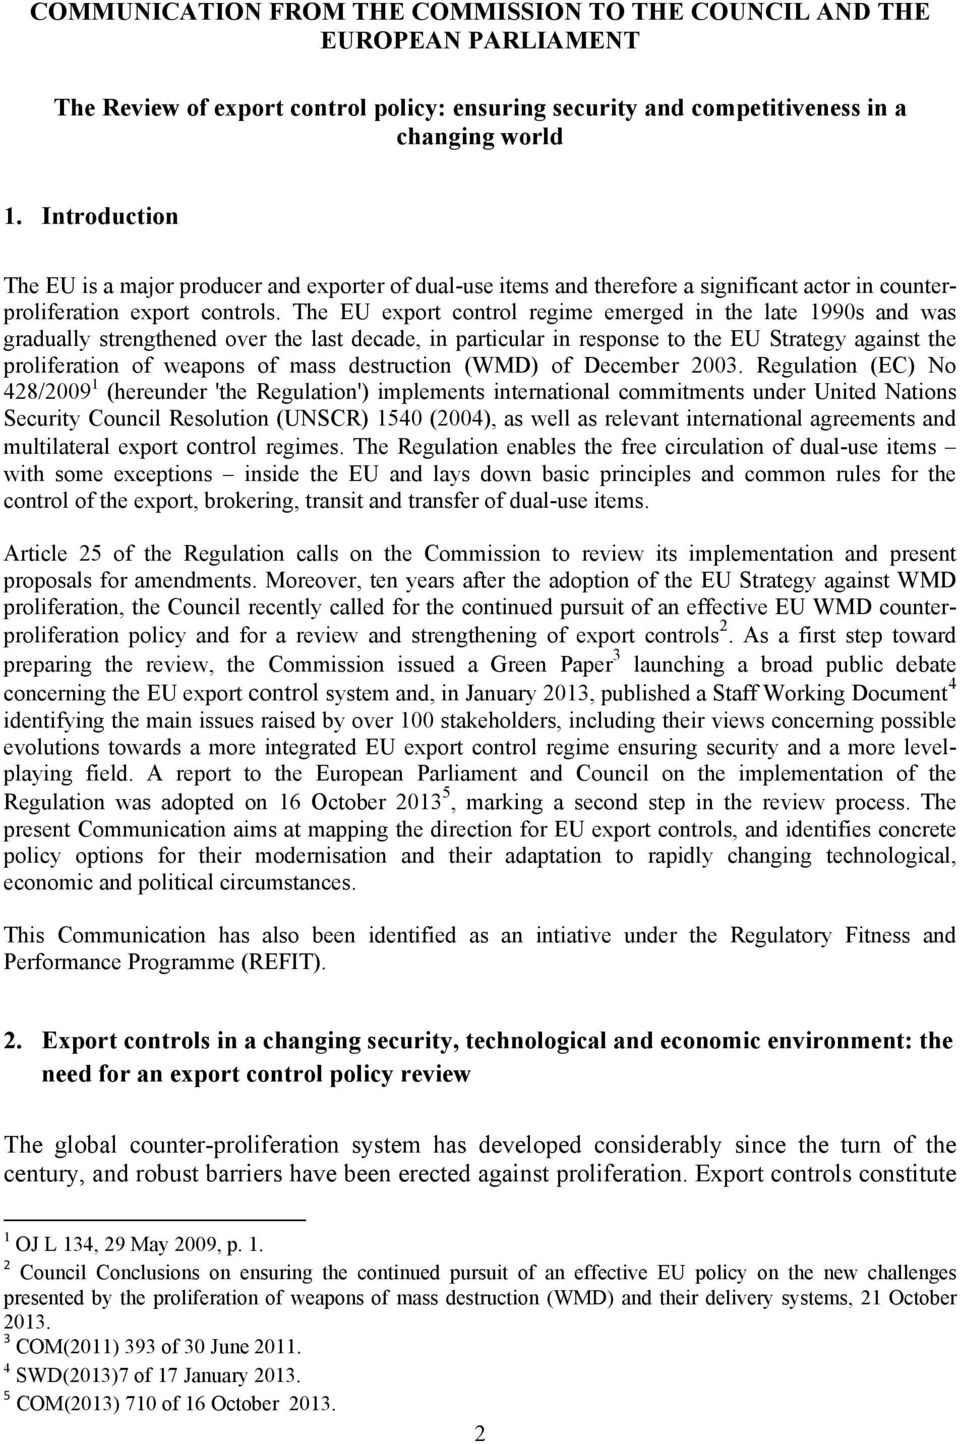 The EU export control regime emerged in the late 1990s and was gradually strengthened over the last decade, in particular in response to the EU Strategy against the proliferation of weapons of mass